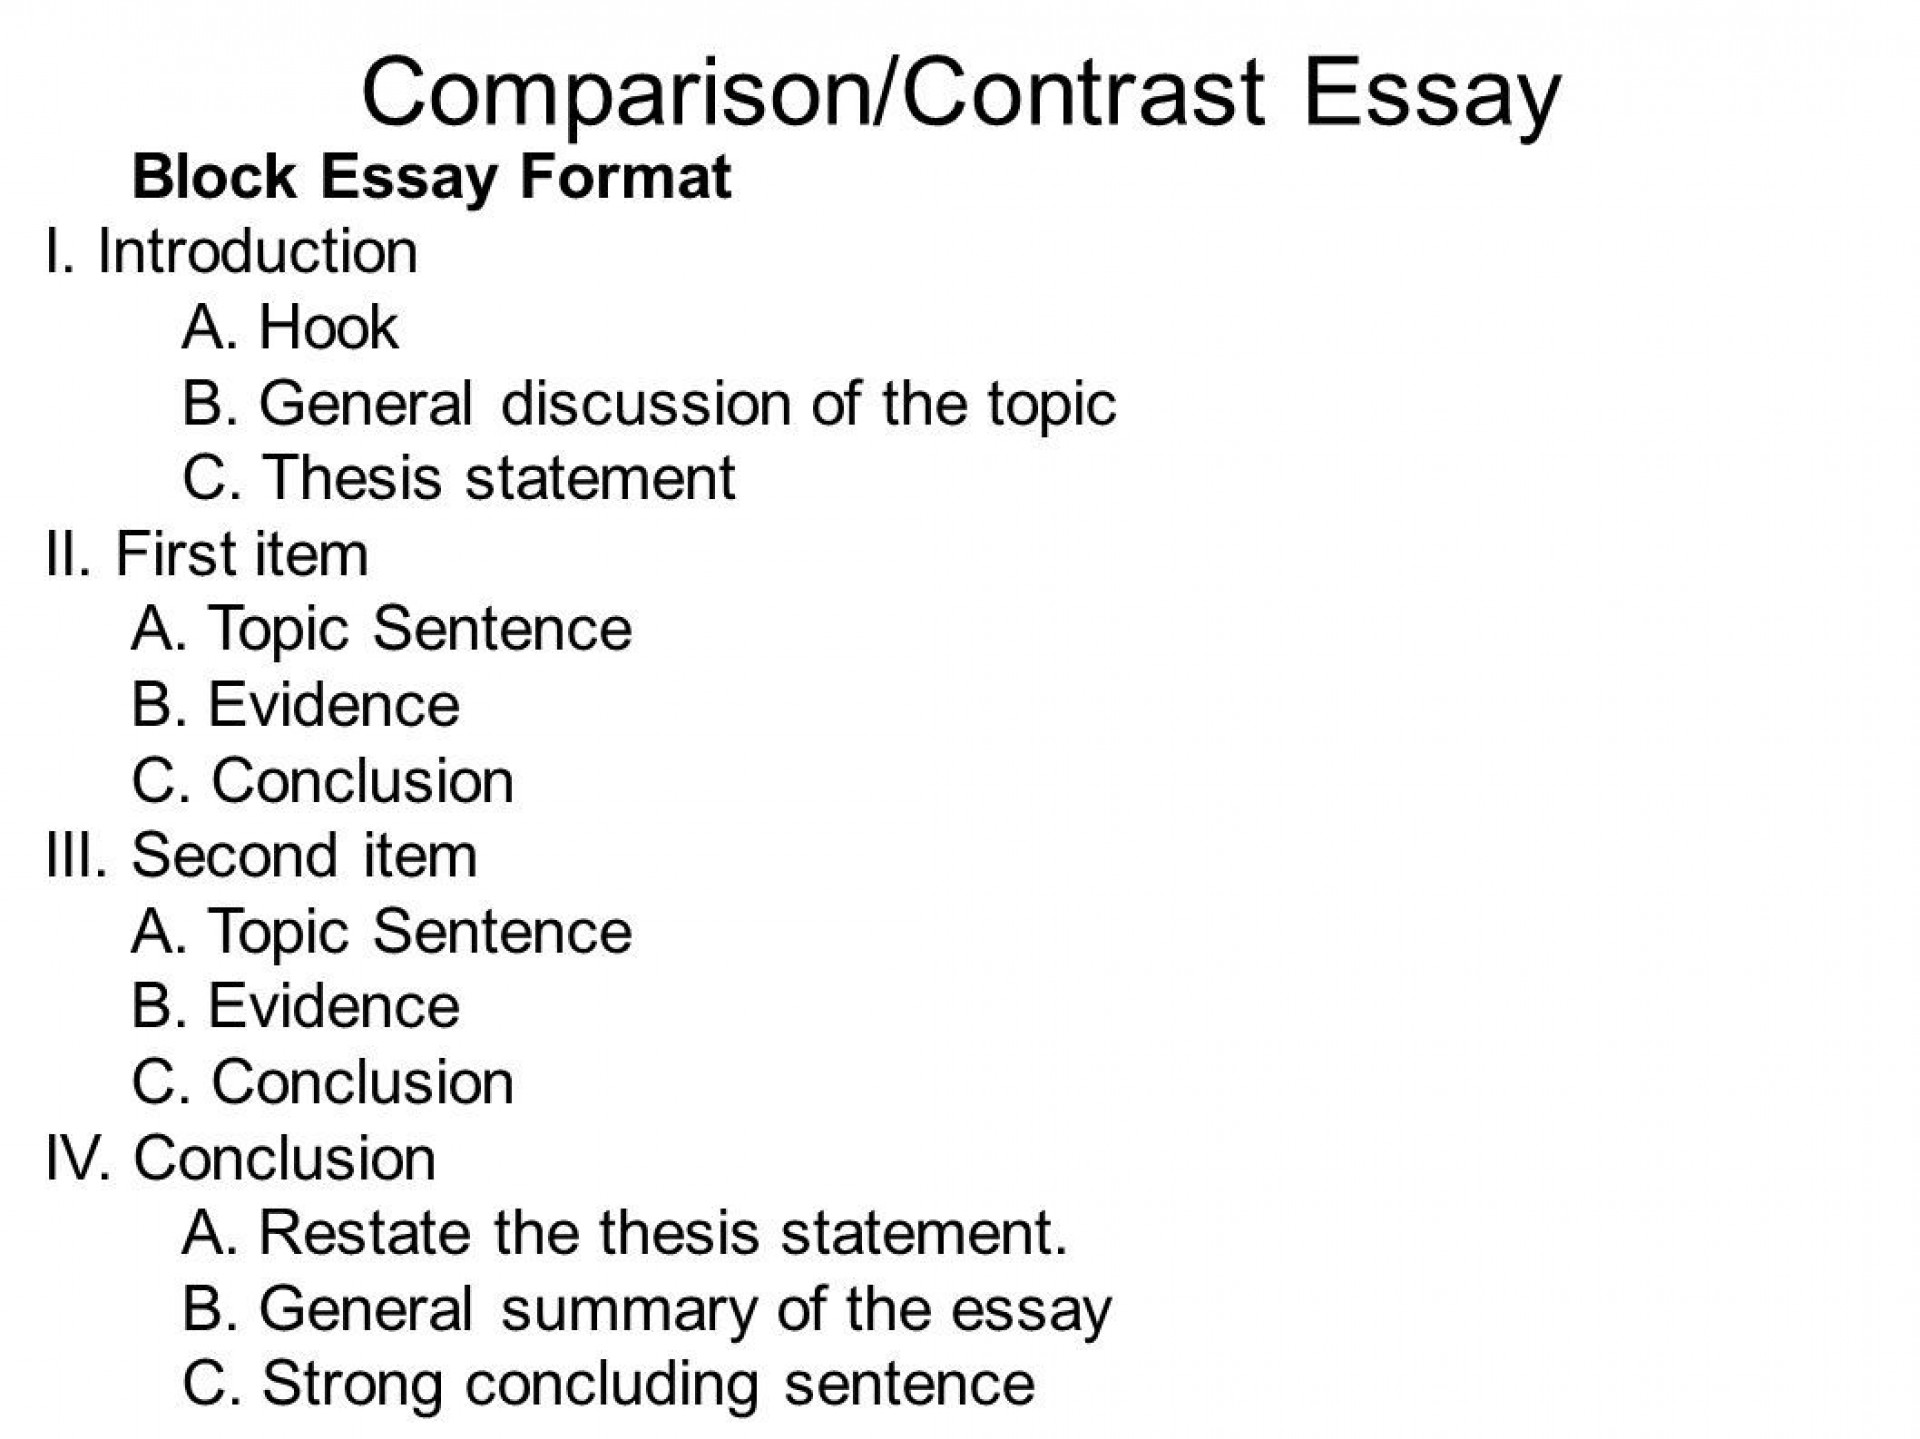 004 Compare And Contrast Essay Outline Magnificent Example Apa Format Examples 1920